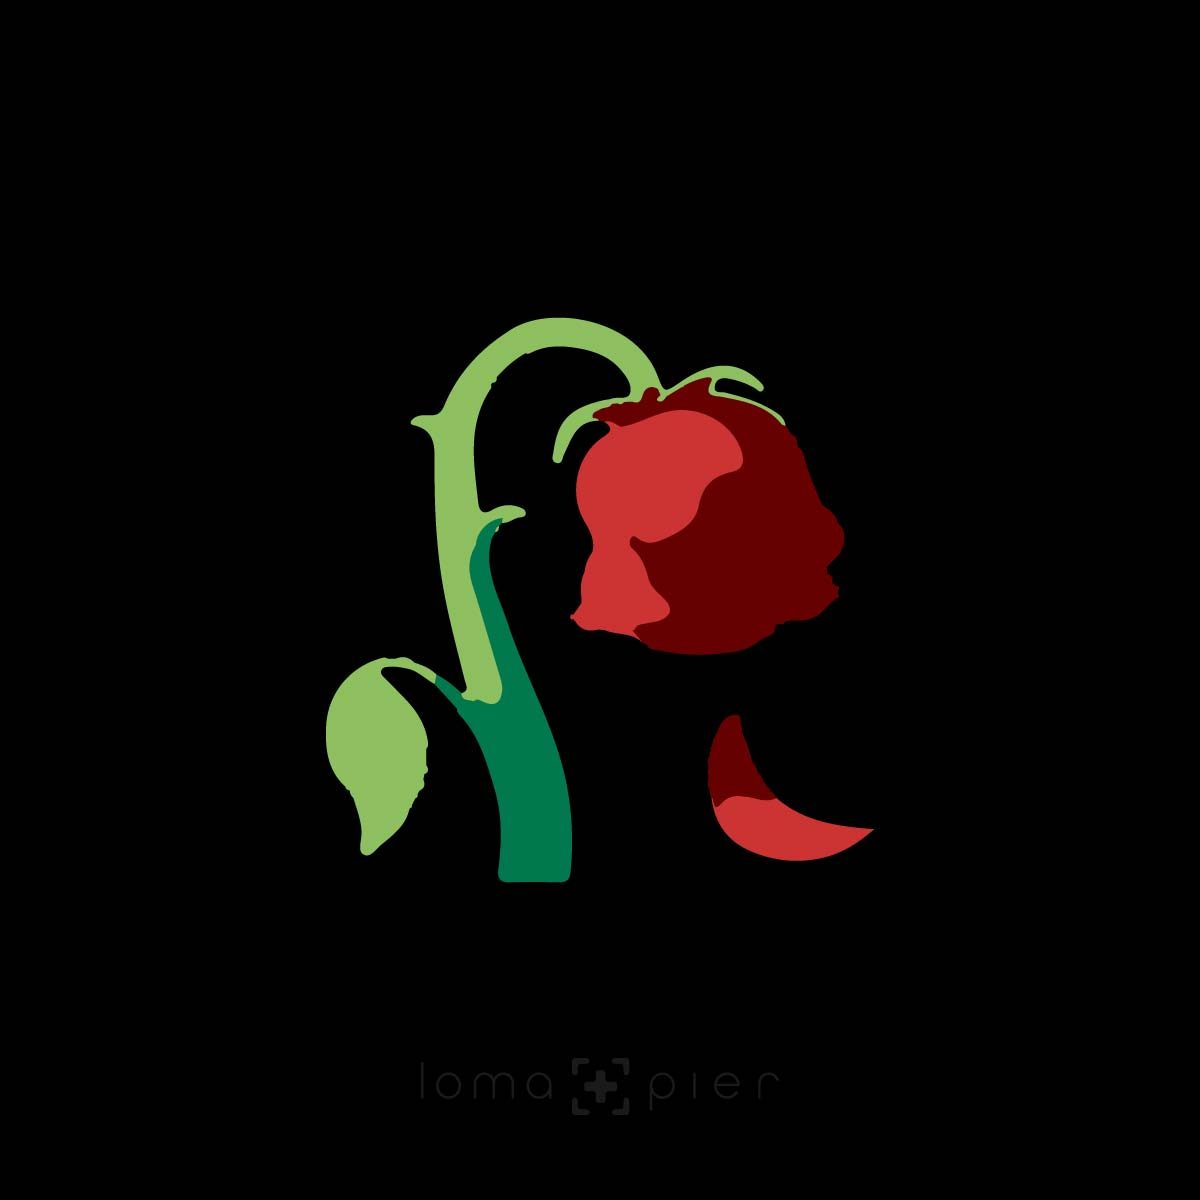 DYING ROSE EMOJI icon in the loma+pier hat store